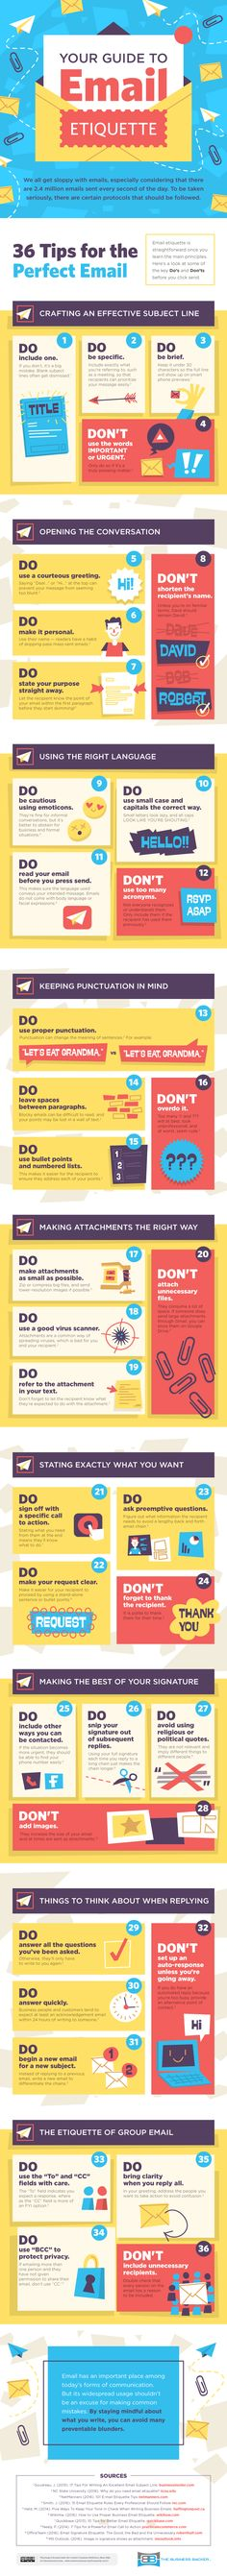 Your Guide to Email Etiquette #Infographic #Email #Business